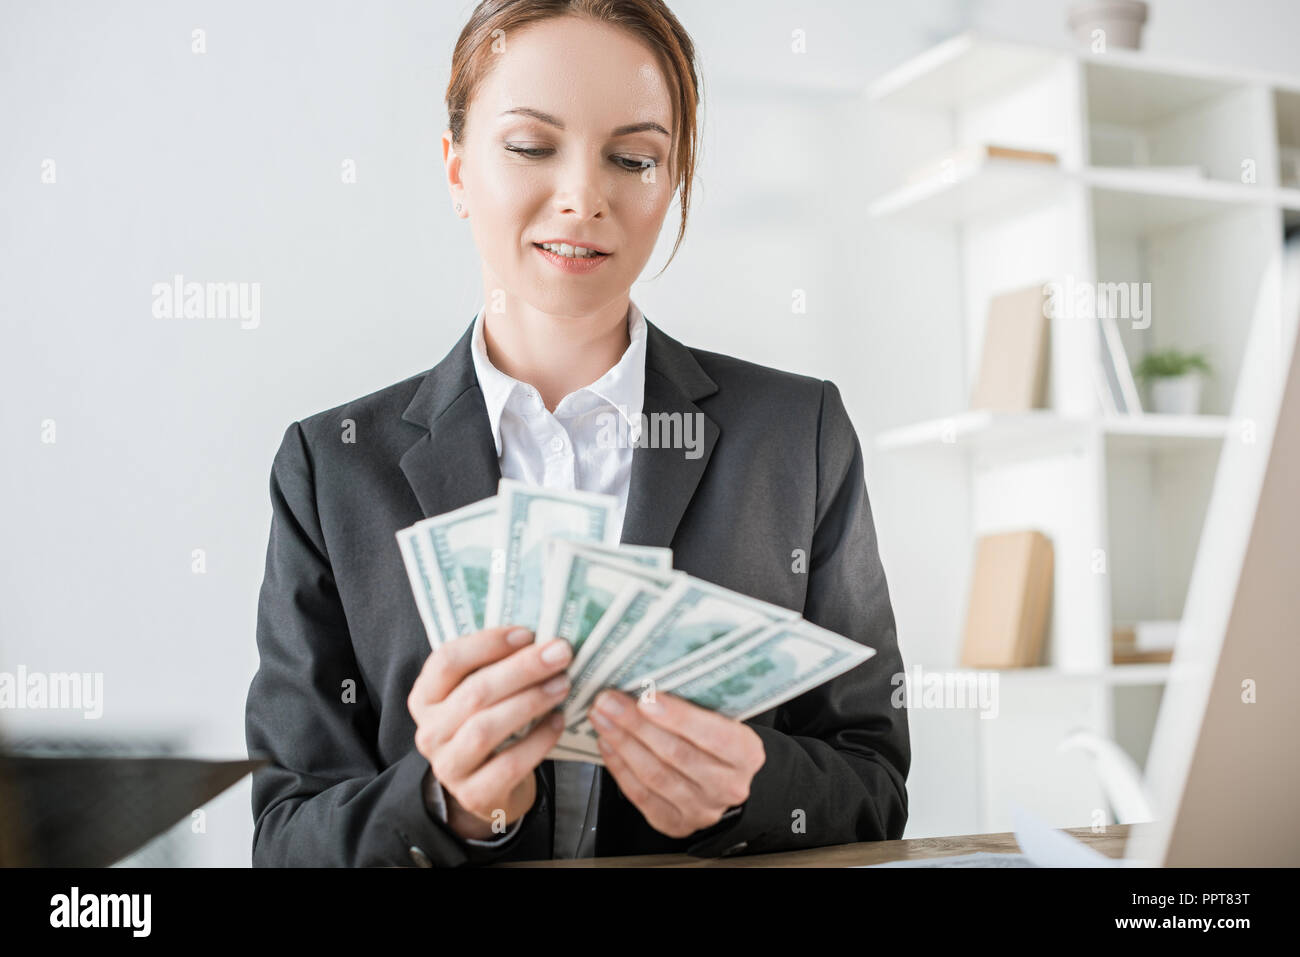 smiling financier counting cash in office - Stock Image